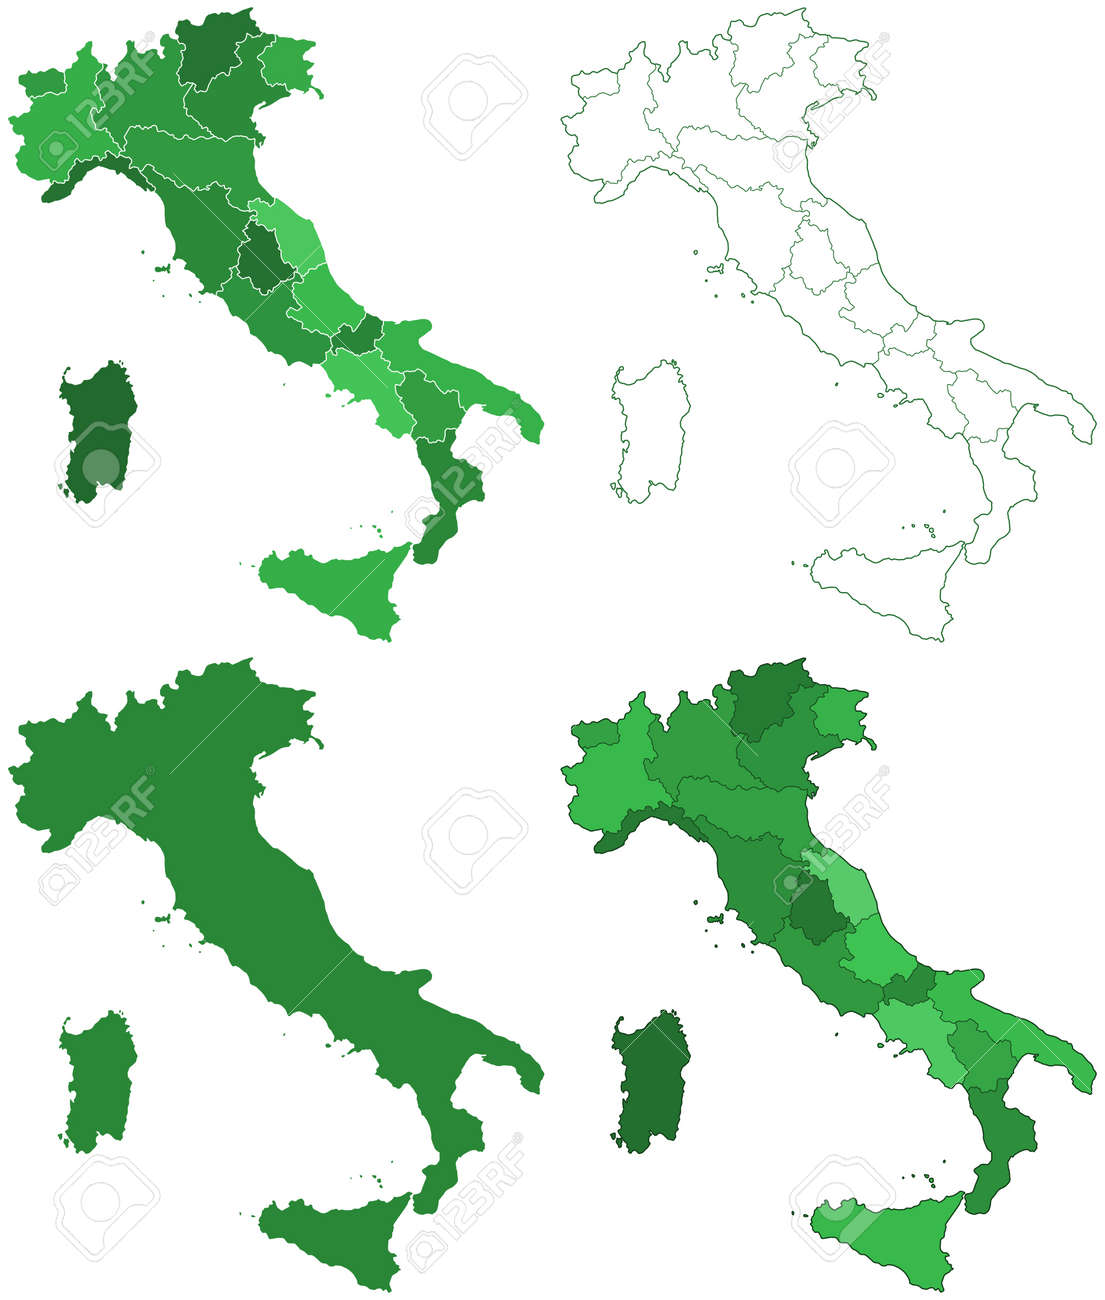 Pdf Map Of Italy.Silhouette Contour Border Map Set Of The Italy With Islands